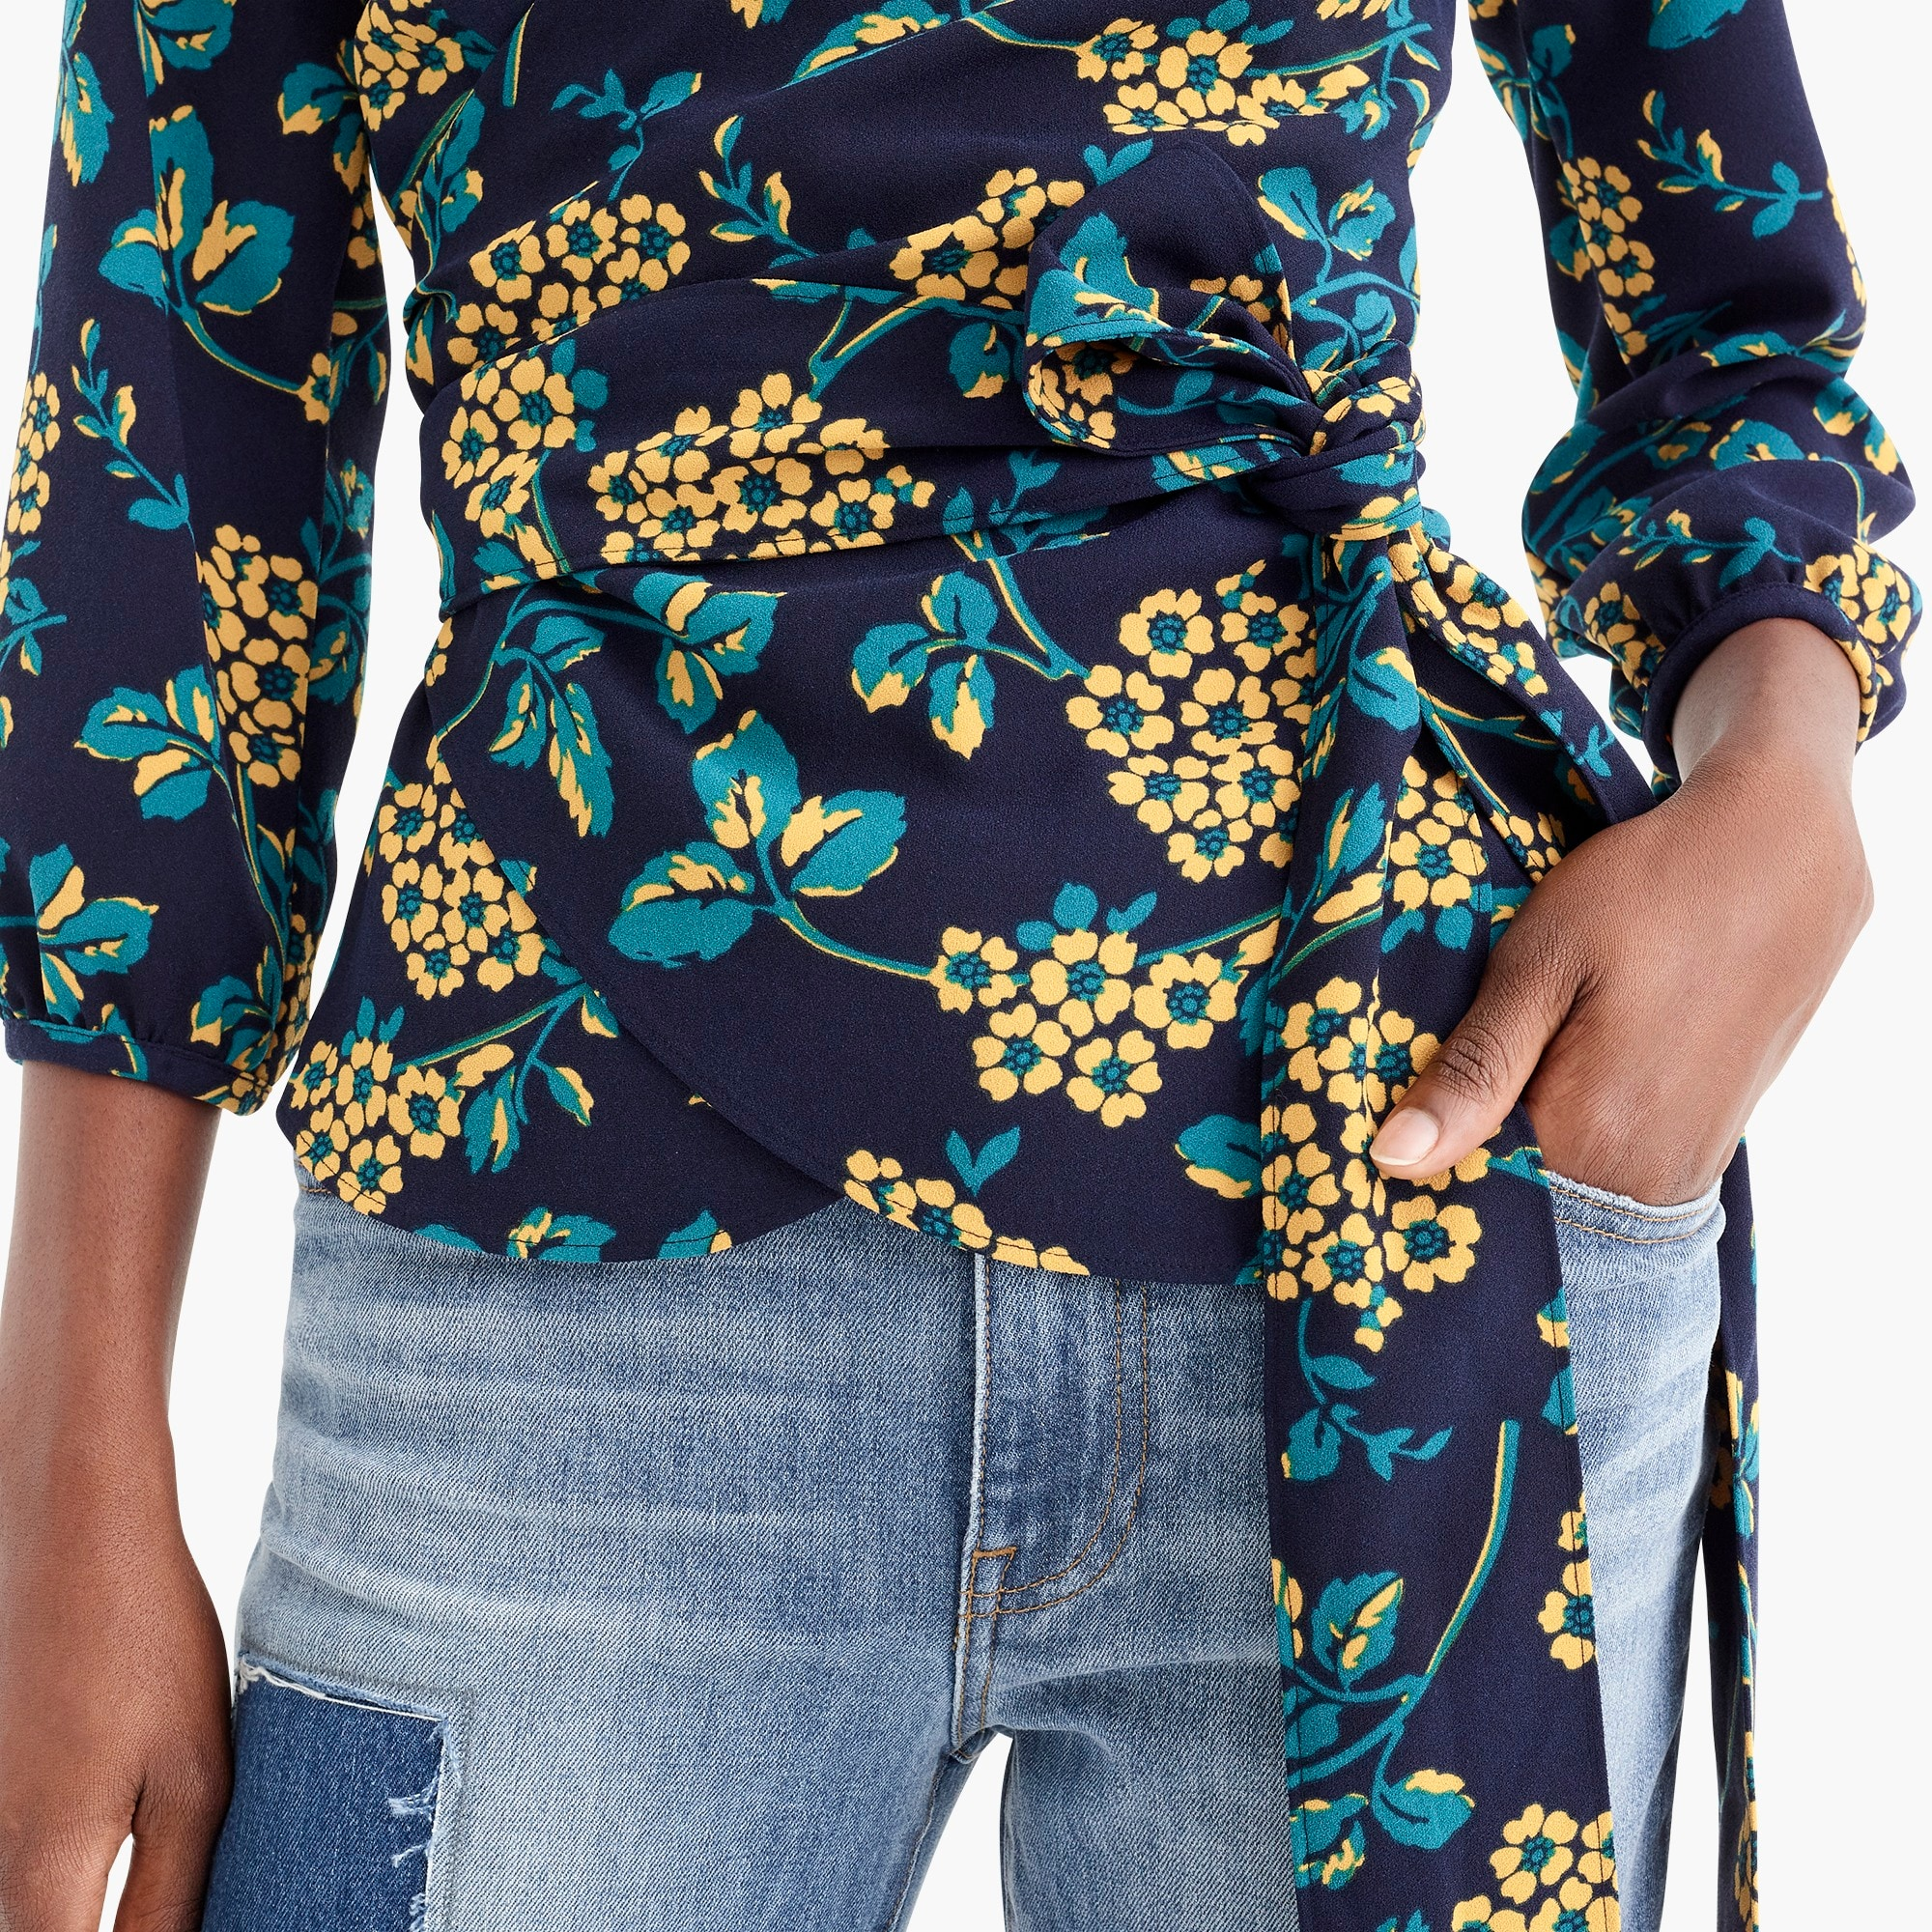 Image 2 for Petite drapey crepe wrap top in floral